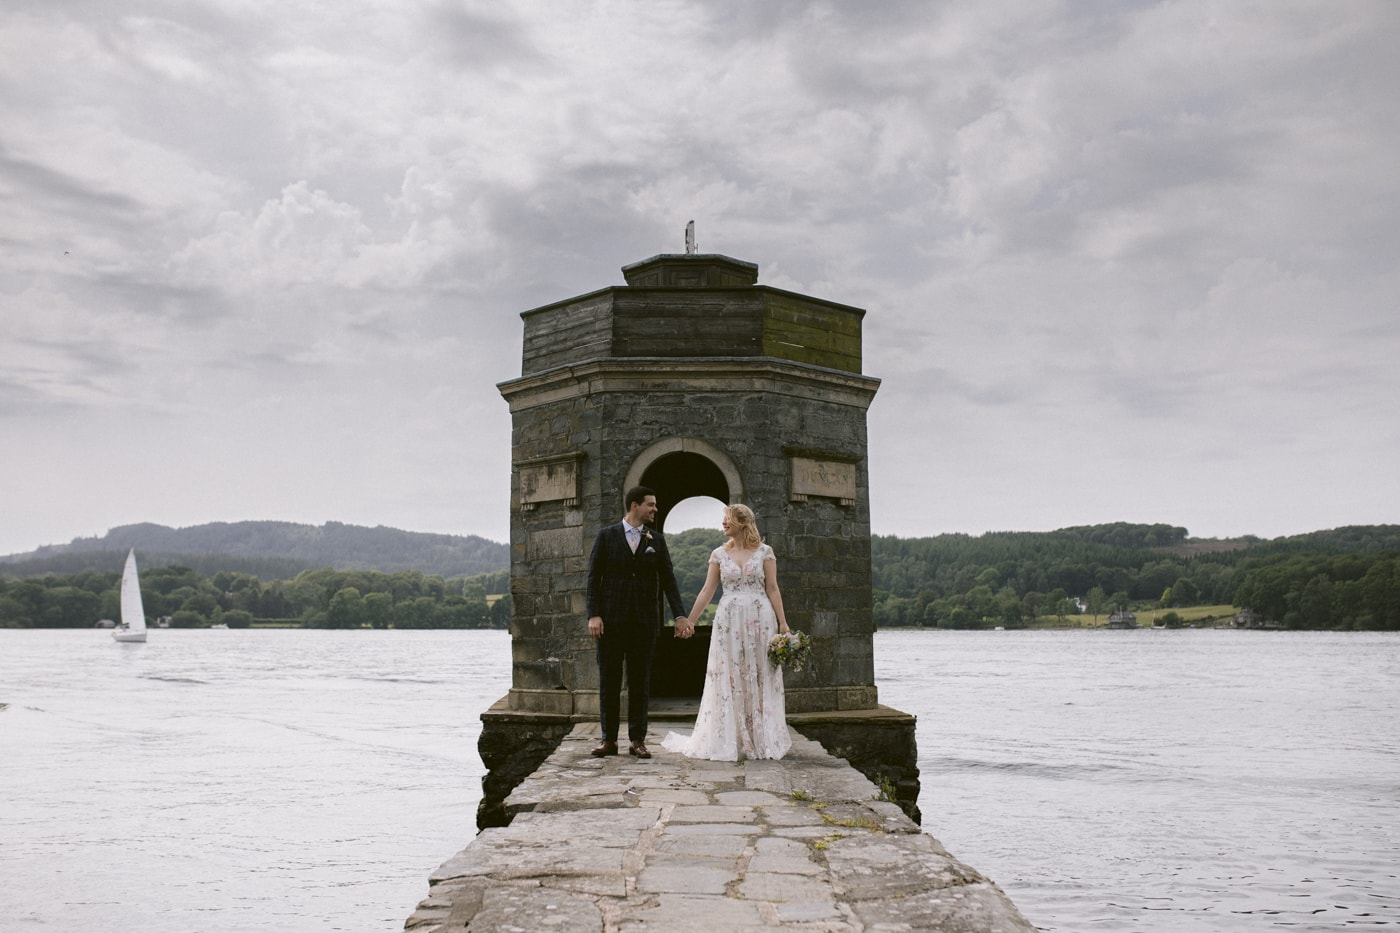 Bride and Groom Together Lakeside at Storrs Hall Wedding